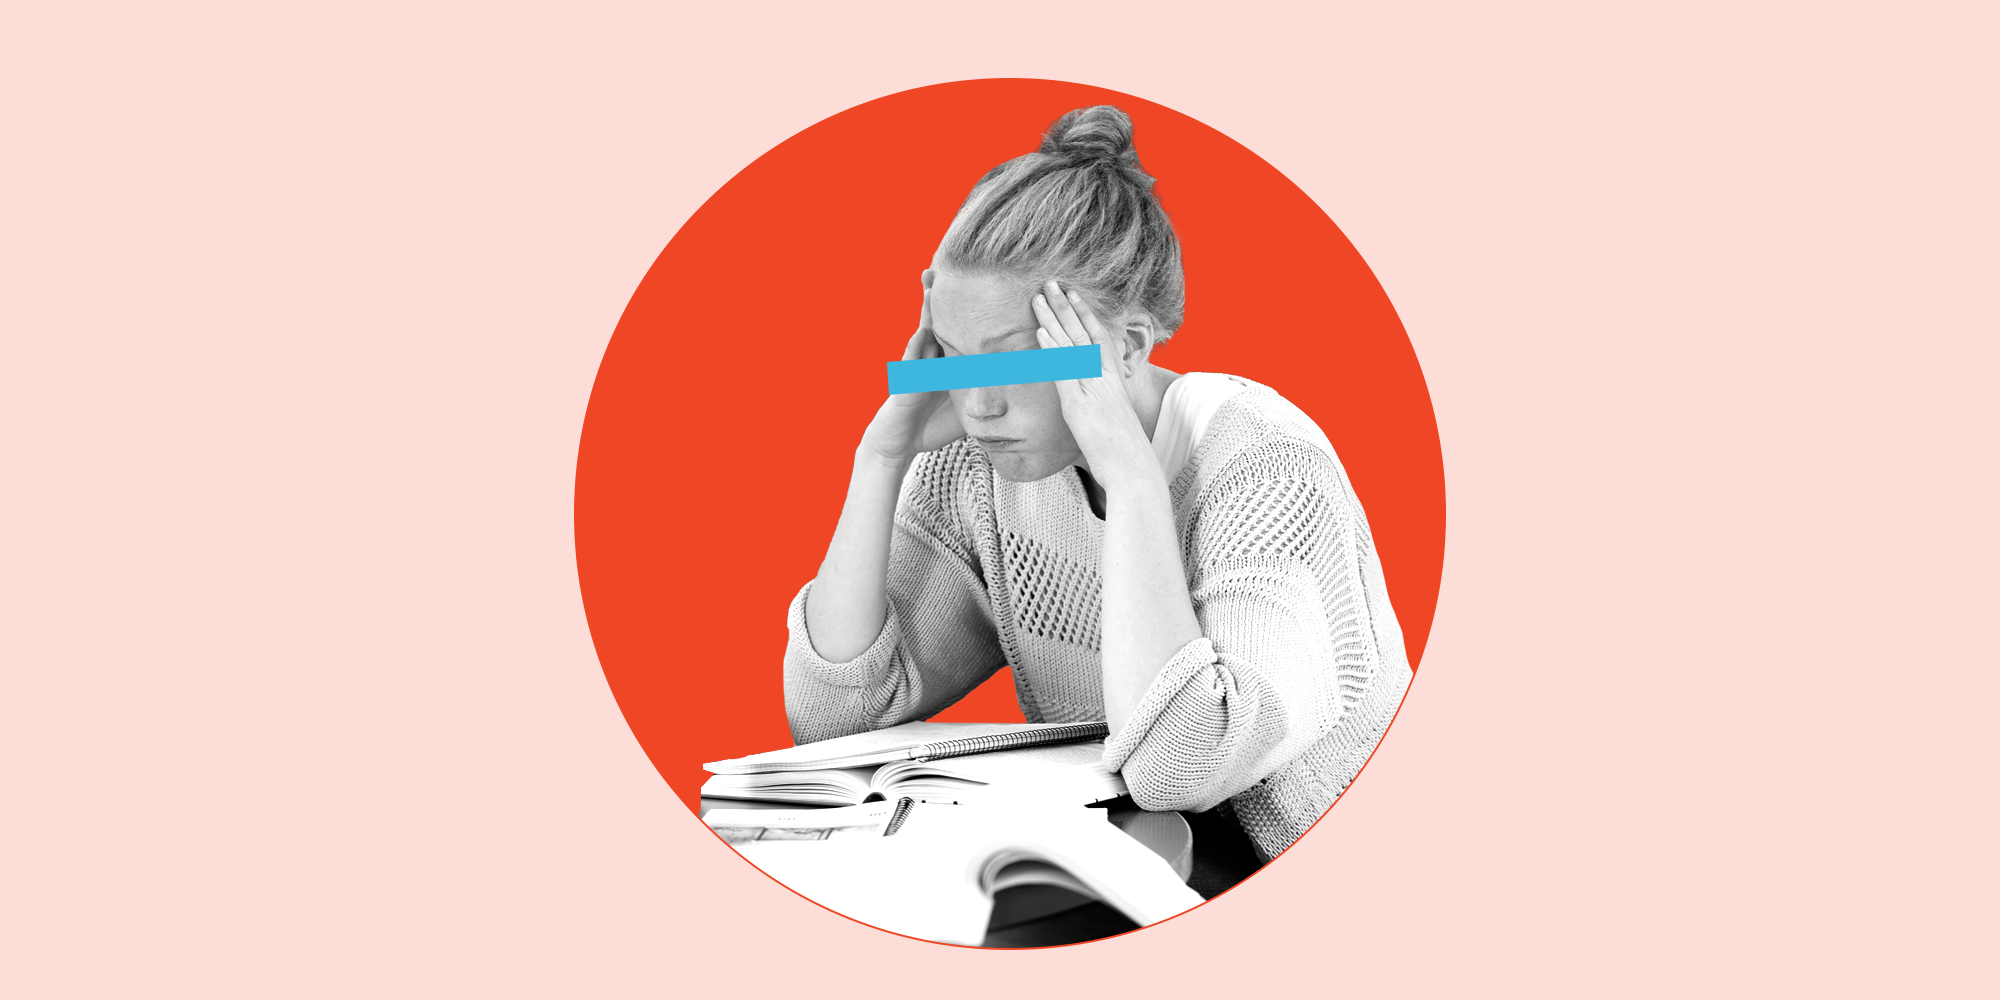 Why are so many women only diagnosed with ADHD in adulthood?